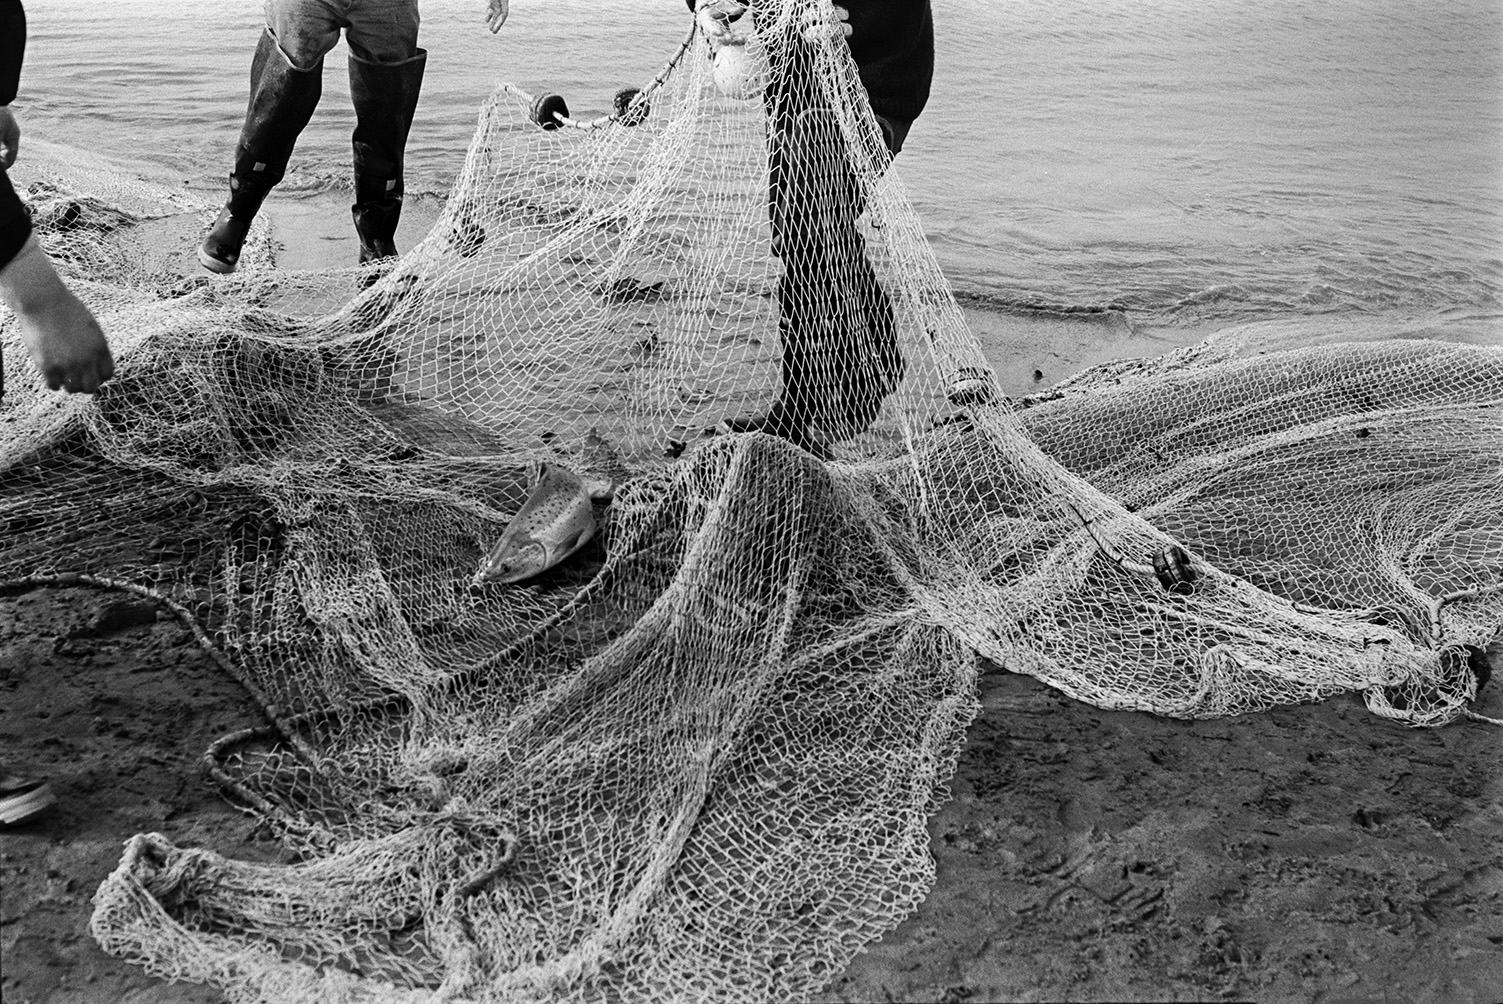 Men hauling in a large fishing net, possibly at Appledore. A salmon can be seen in the net.